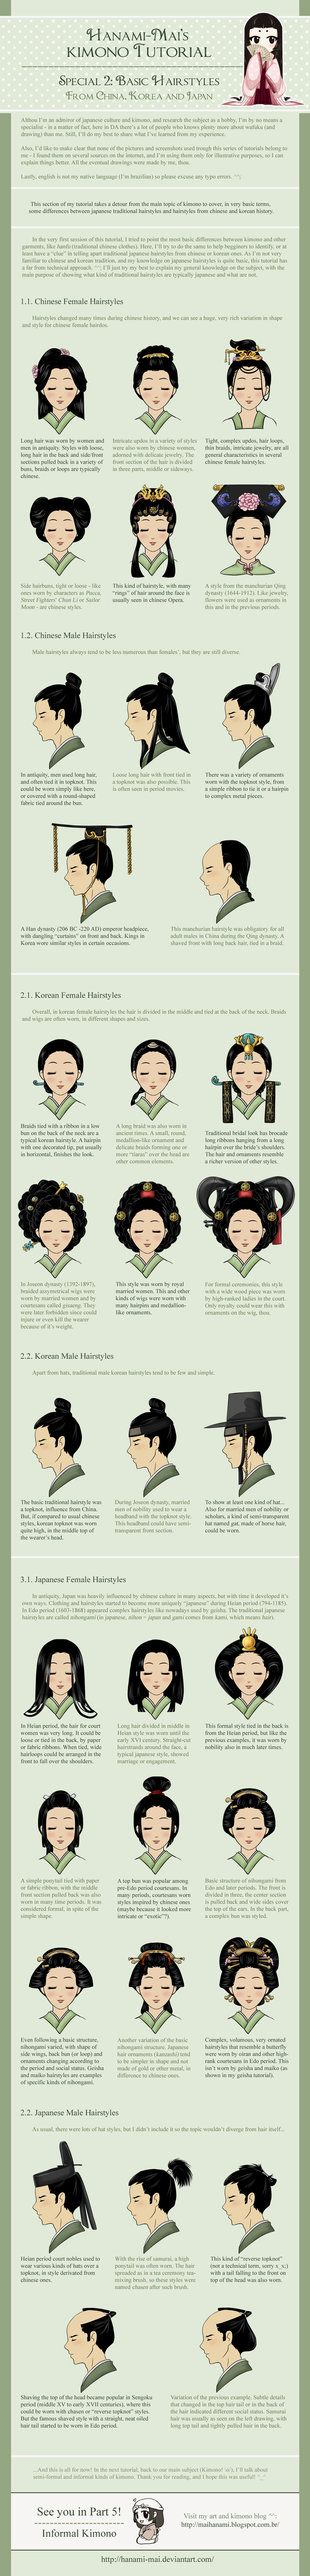 The next part of my tutorial would cover informal kimono, but I was asked by about the differences between traditional japanese and chinese hairstyles. So I decided to make this little tutorial spe...